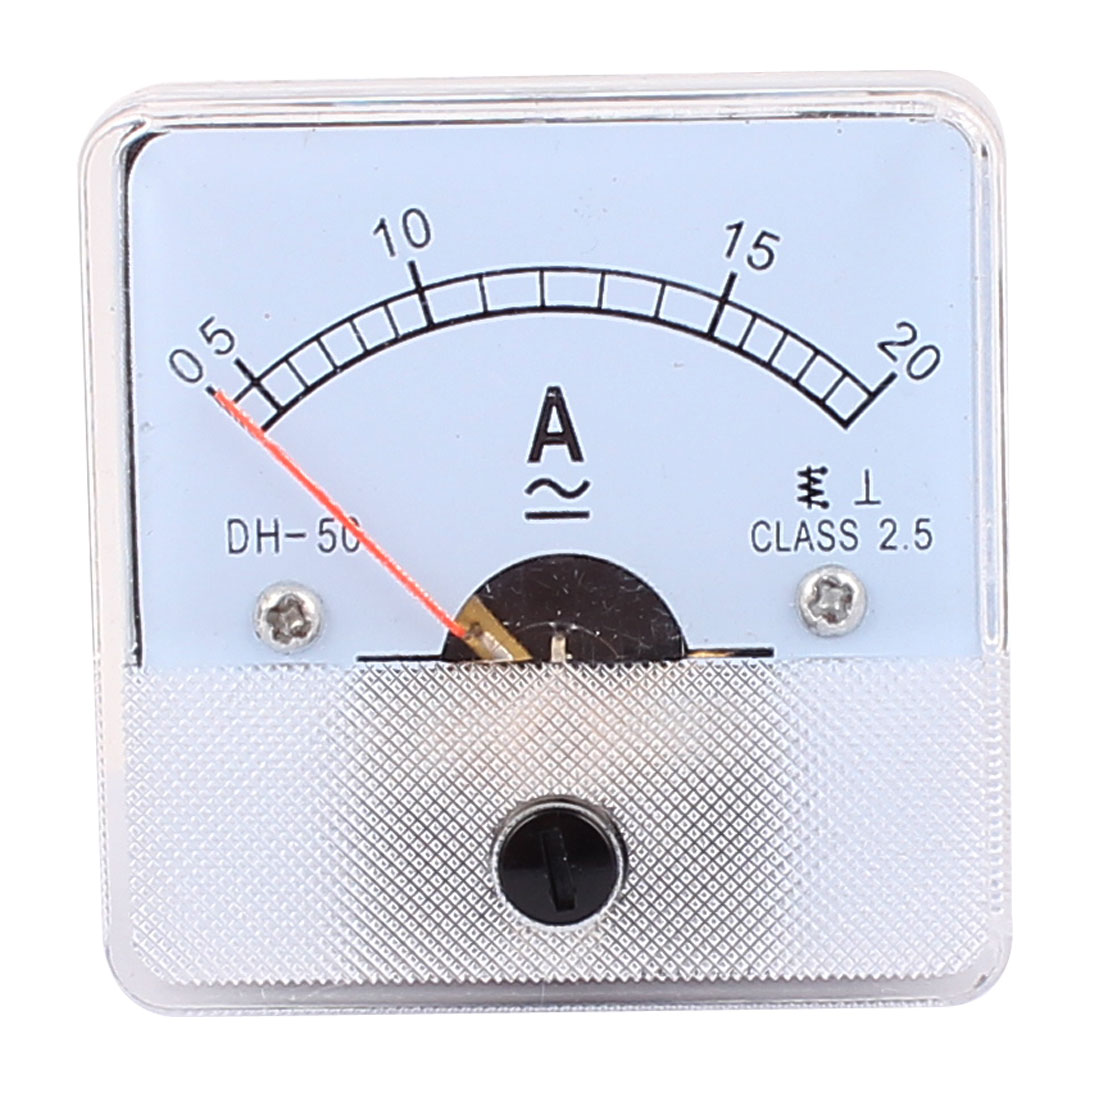 DH50 Pointer Needle AC 0-20A Current Tester Panel Analog Ammeter 50mm x 50mm